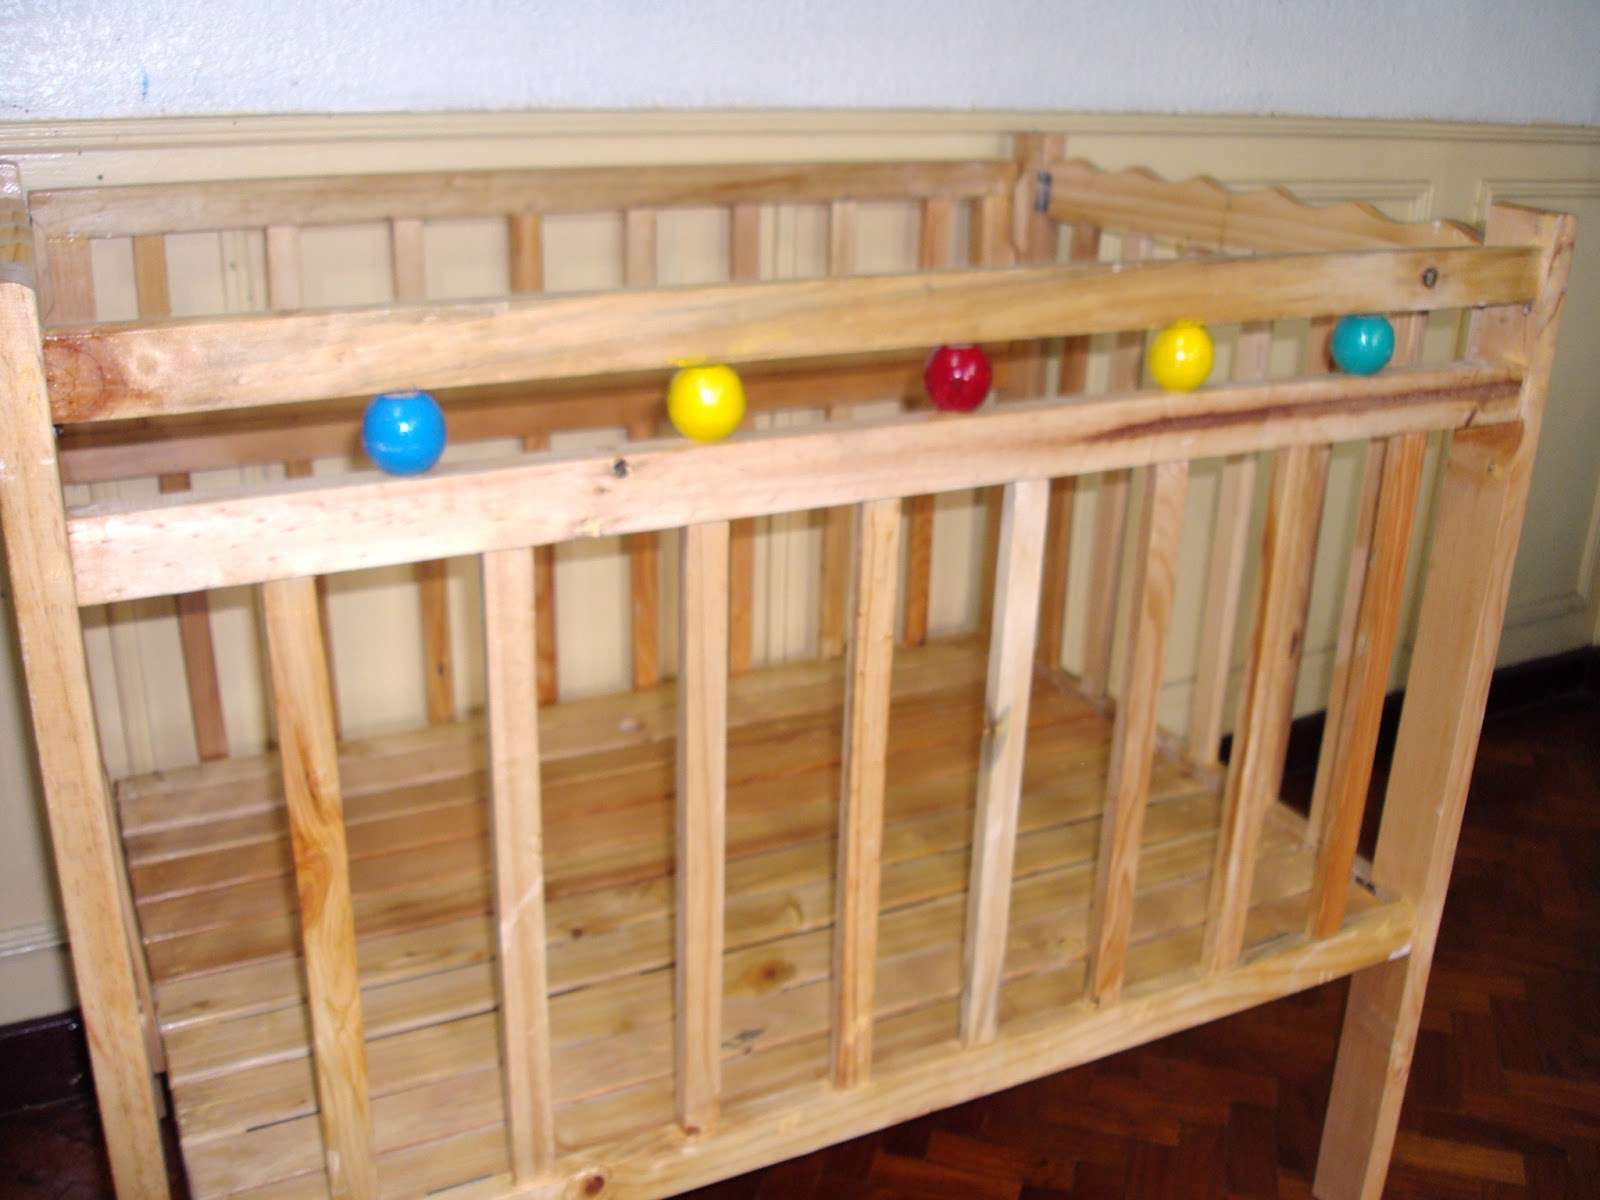 Wooden crib for sale cavite - Ecowaste Coalition Finds Toxic Lead In Baby Cribs Urges Doh To Initiate Recall Order